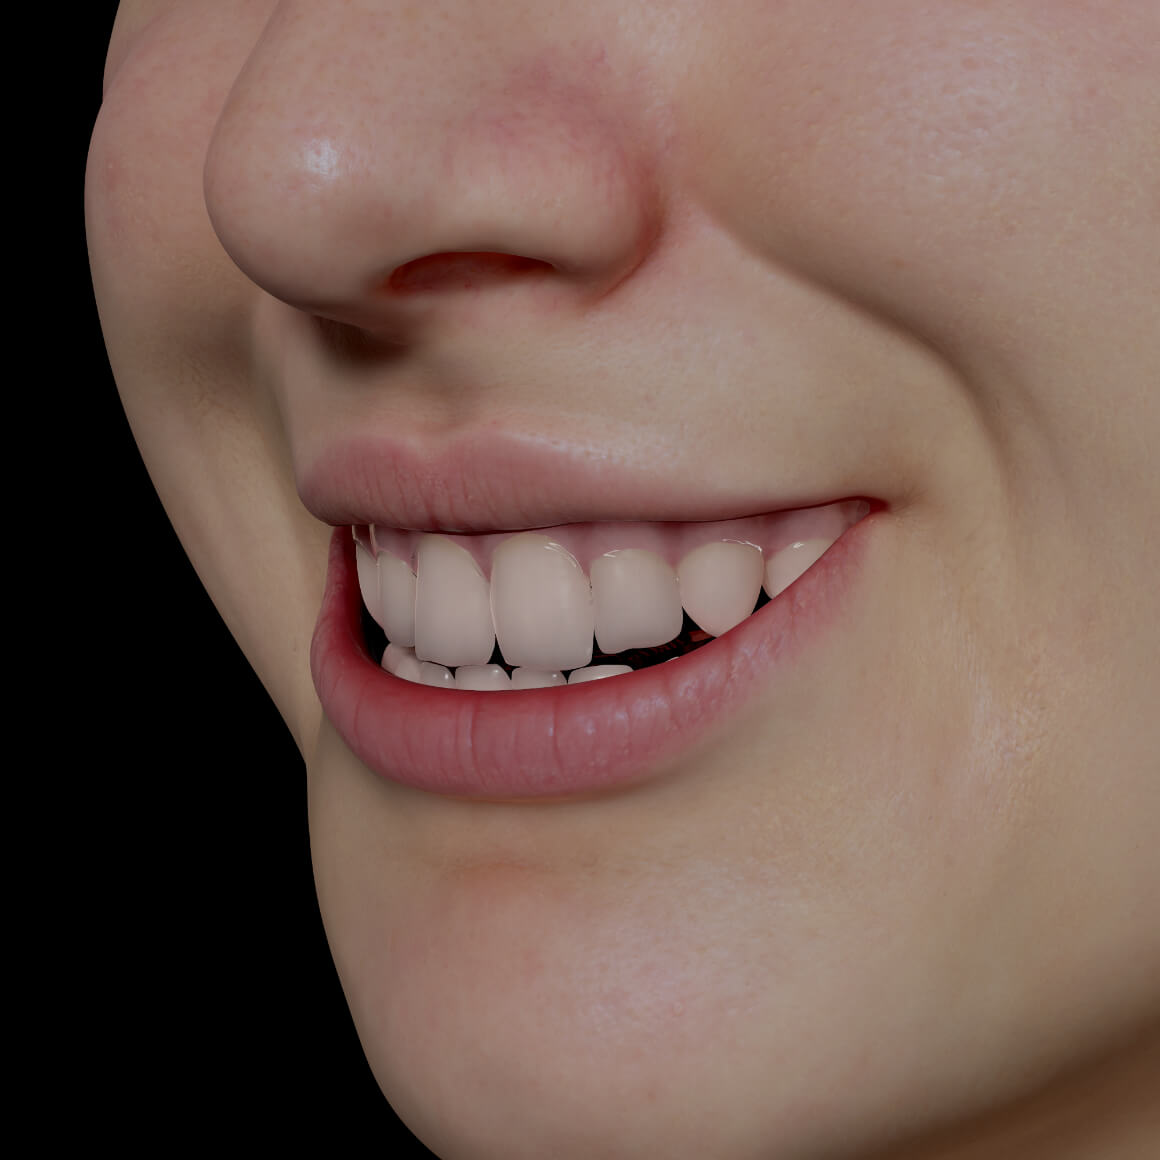 Smile of a Clinique Chloé female patient positioned at an angle after neuromodulator injections for gummy smile